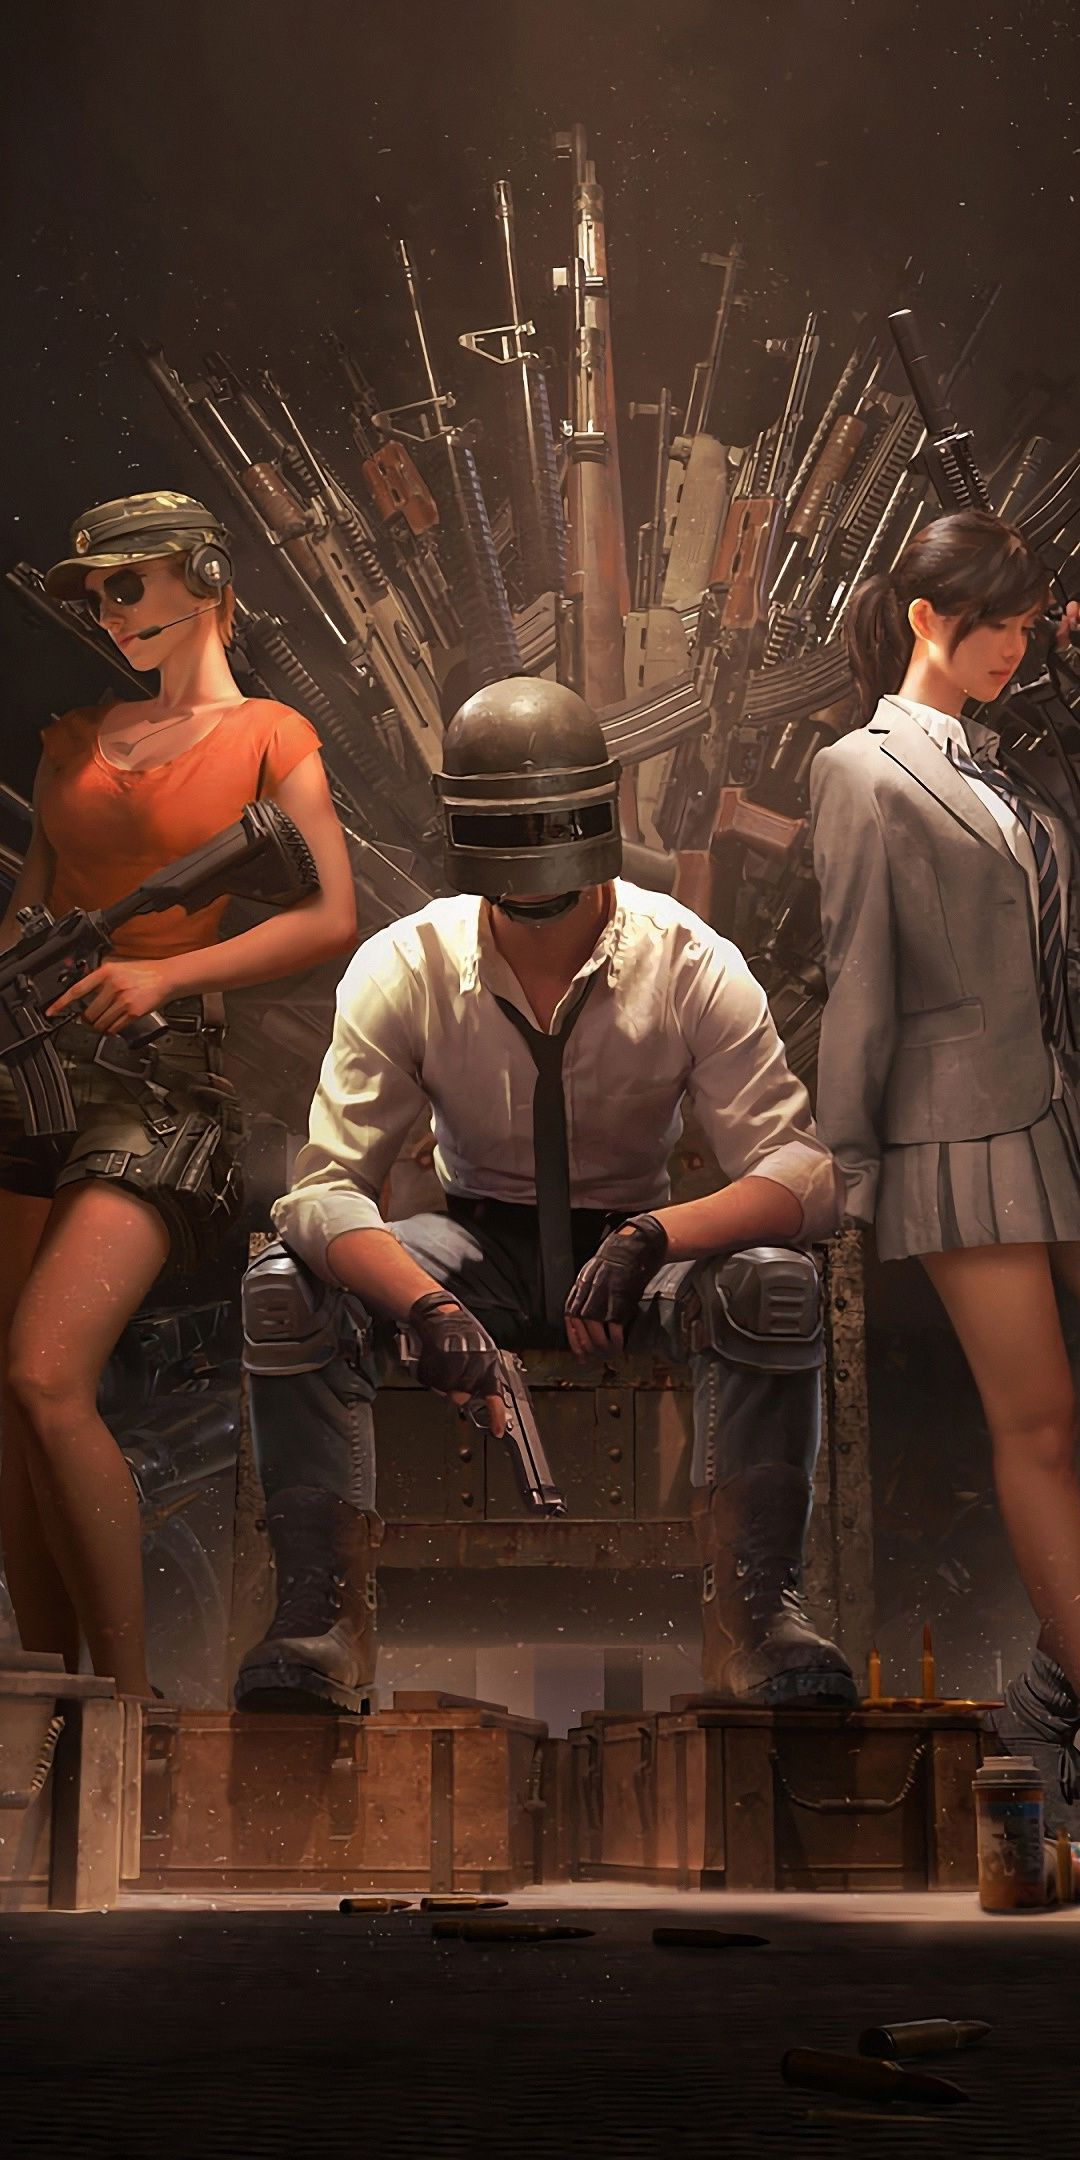 PUBG, Helmet guy with girls, guns ...